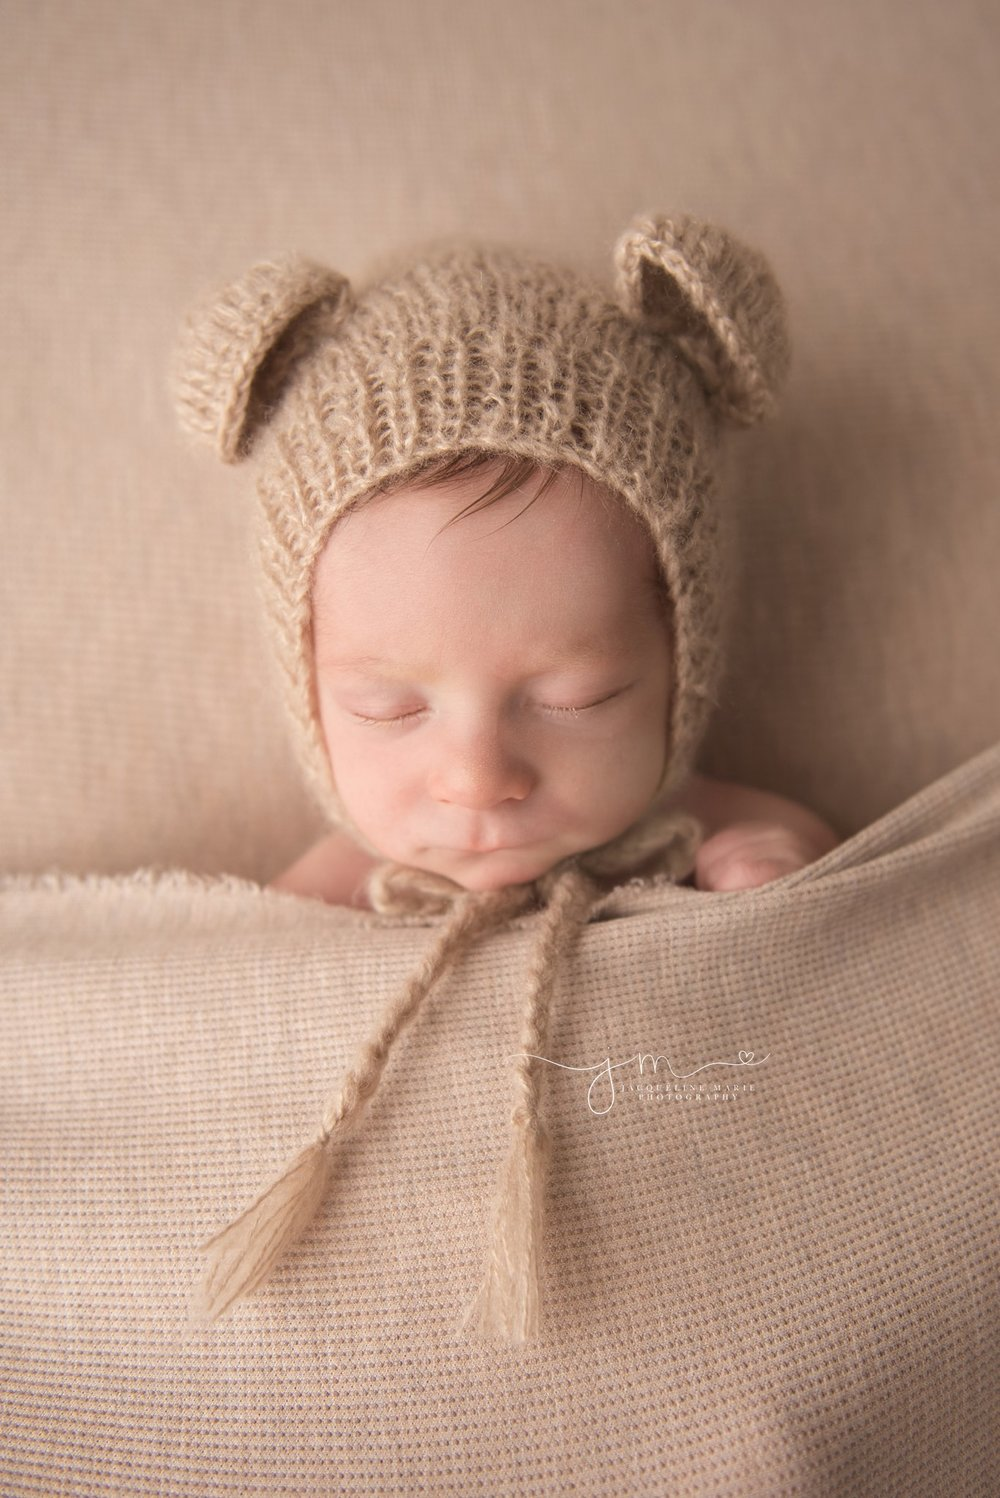 columbus ohio newborn baby features features portraits of baby boy wearing teddy bear bonnet at newborn portrait studio